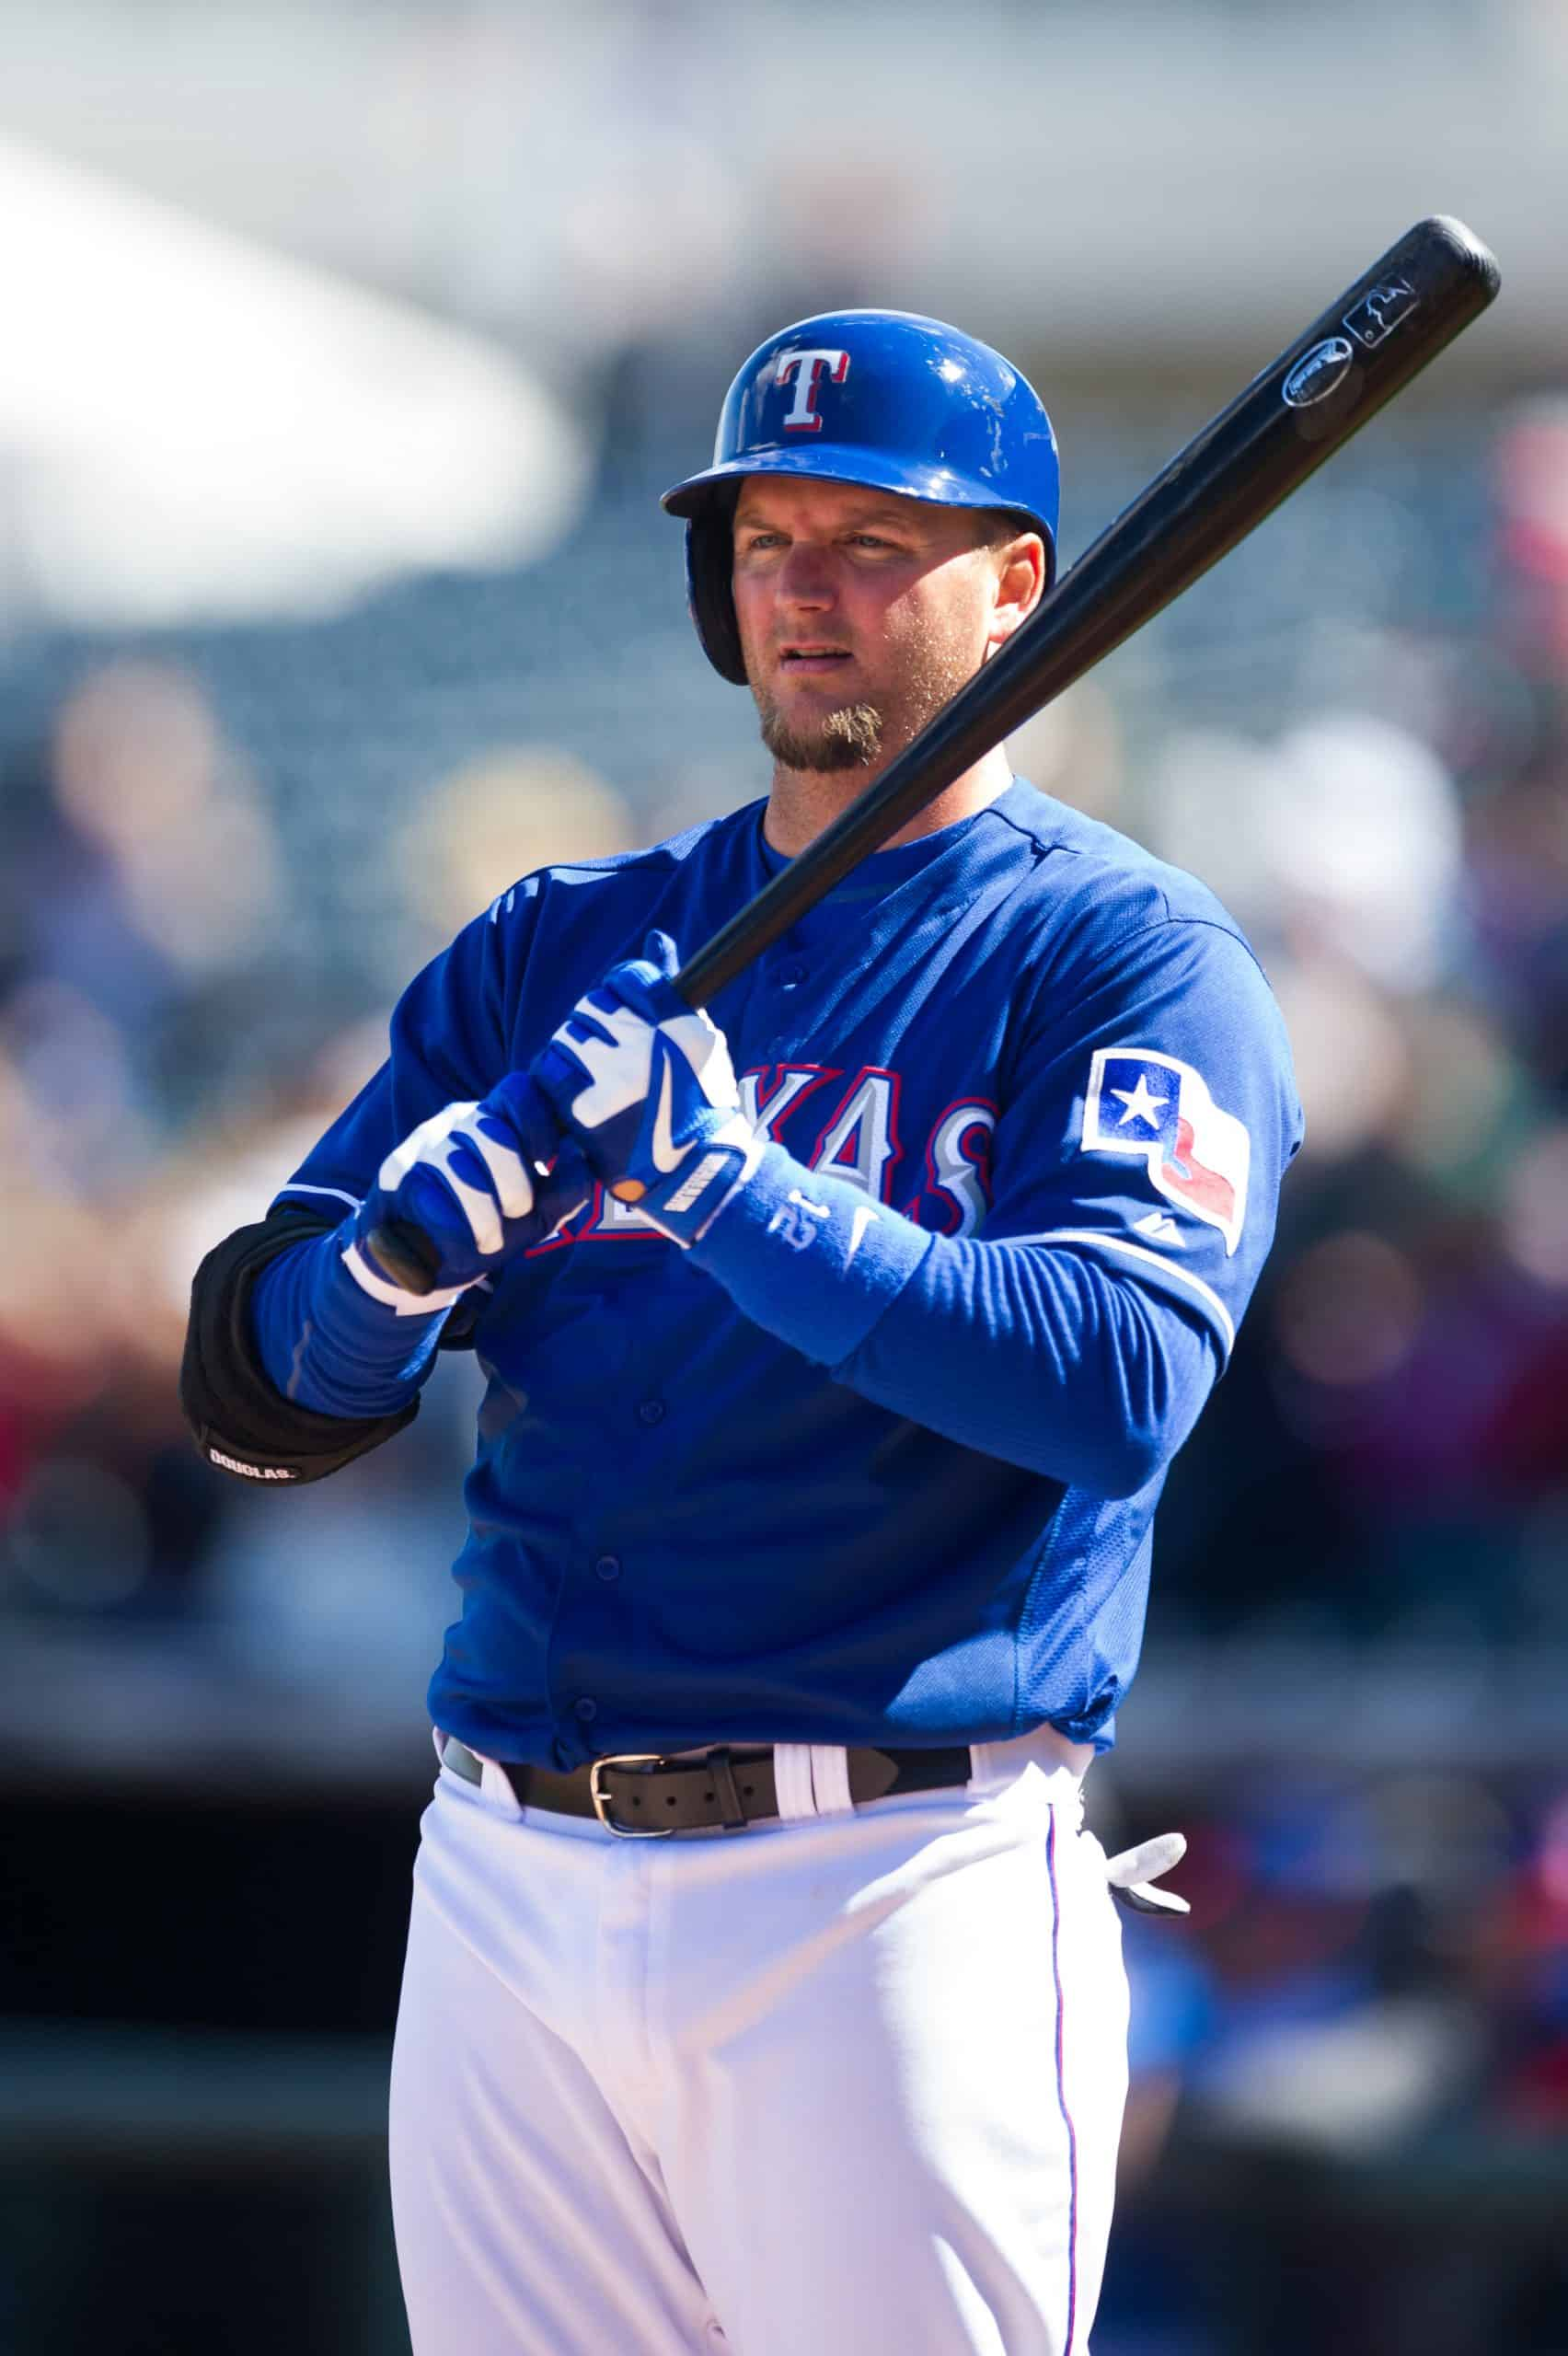 Former catcher A.J. Pierzynski on deck during spring training with the Rangers